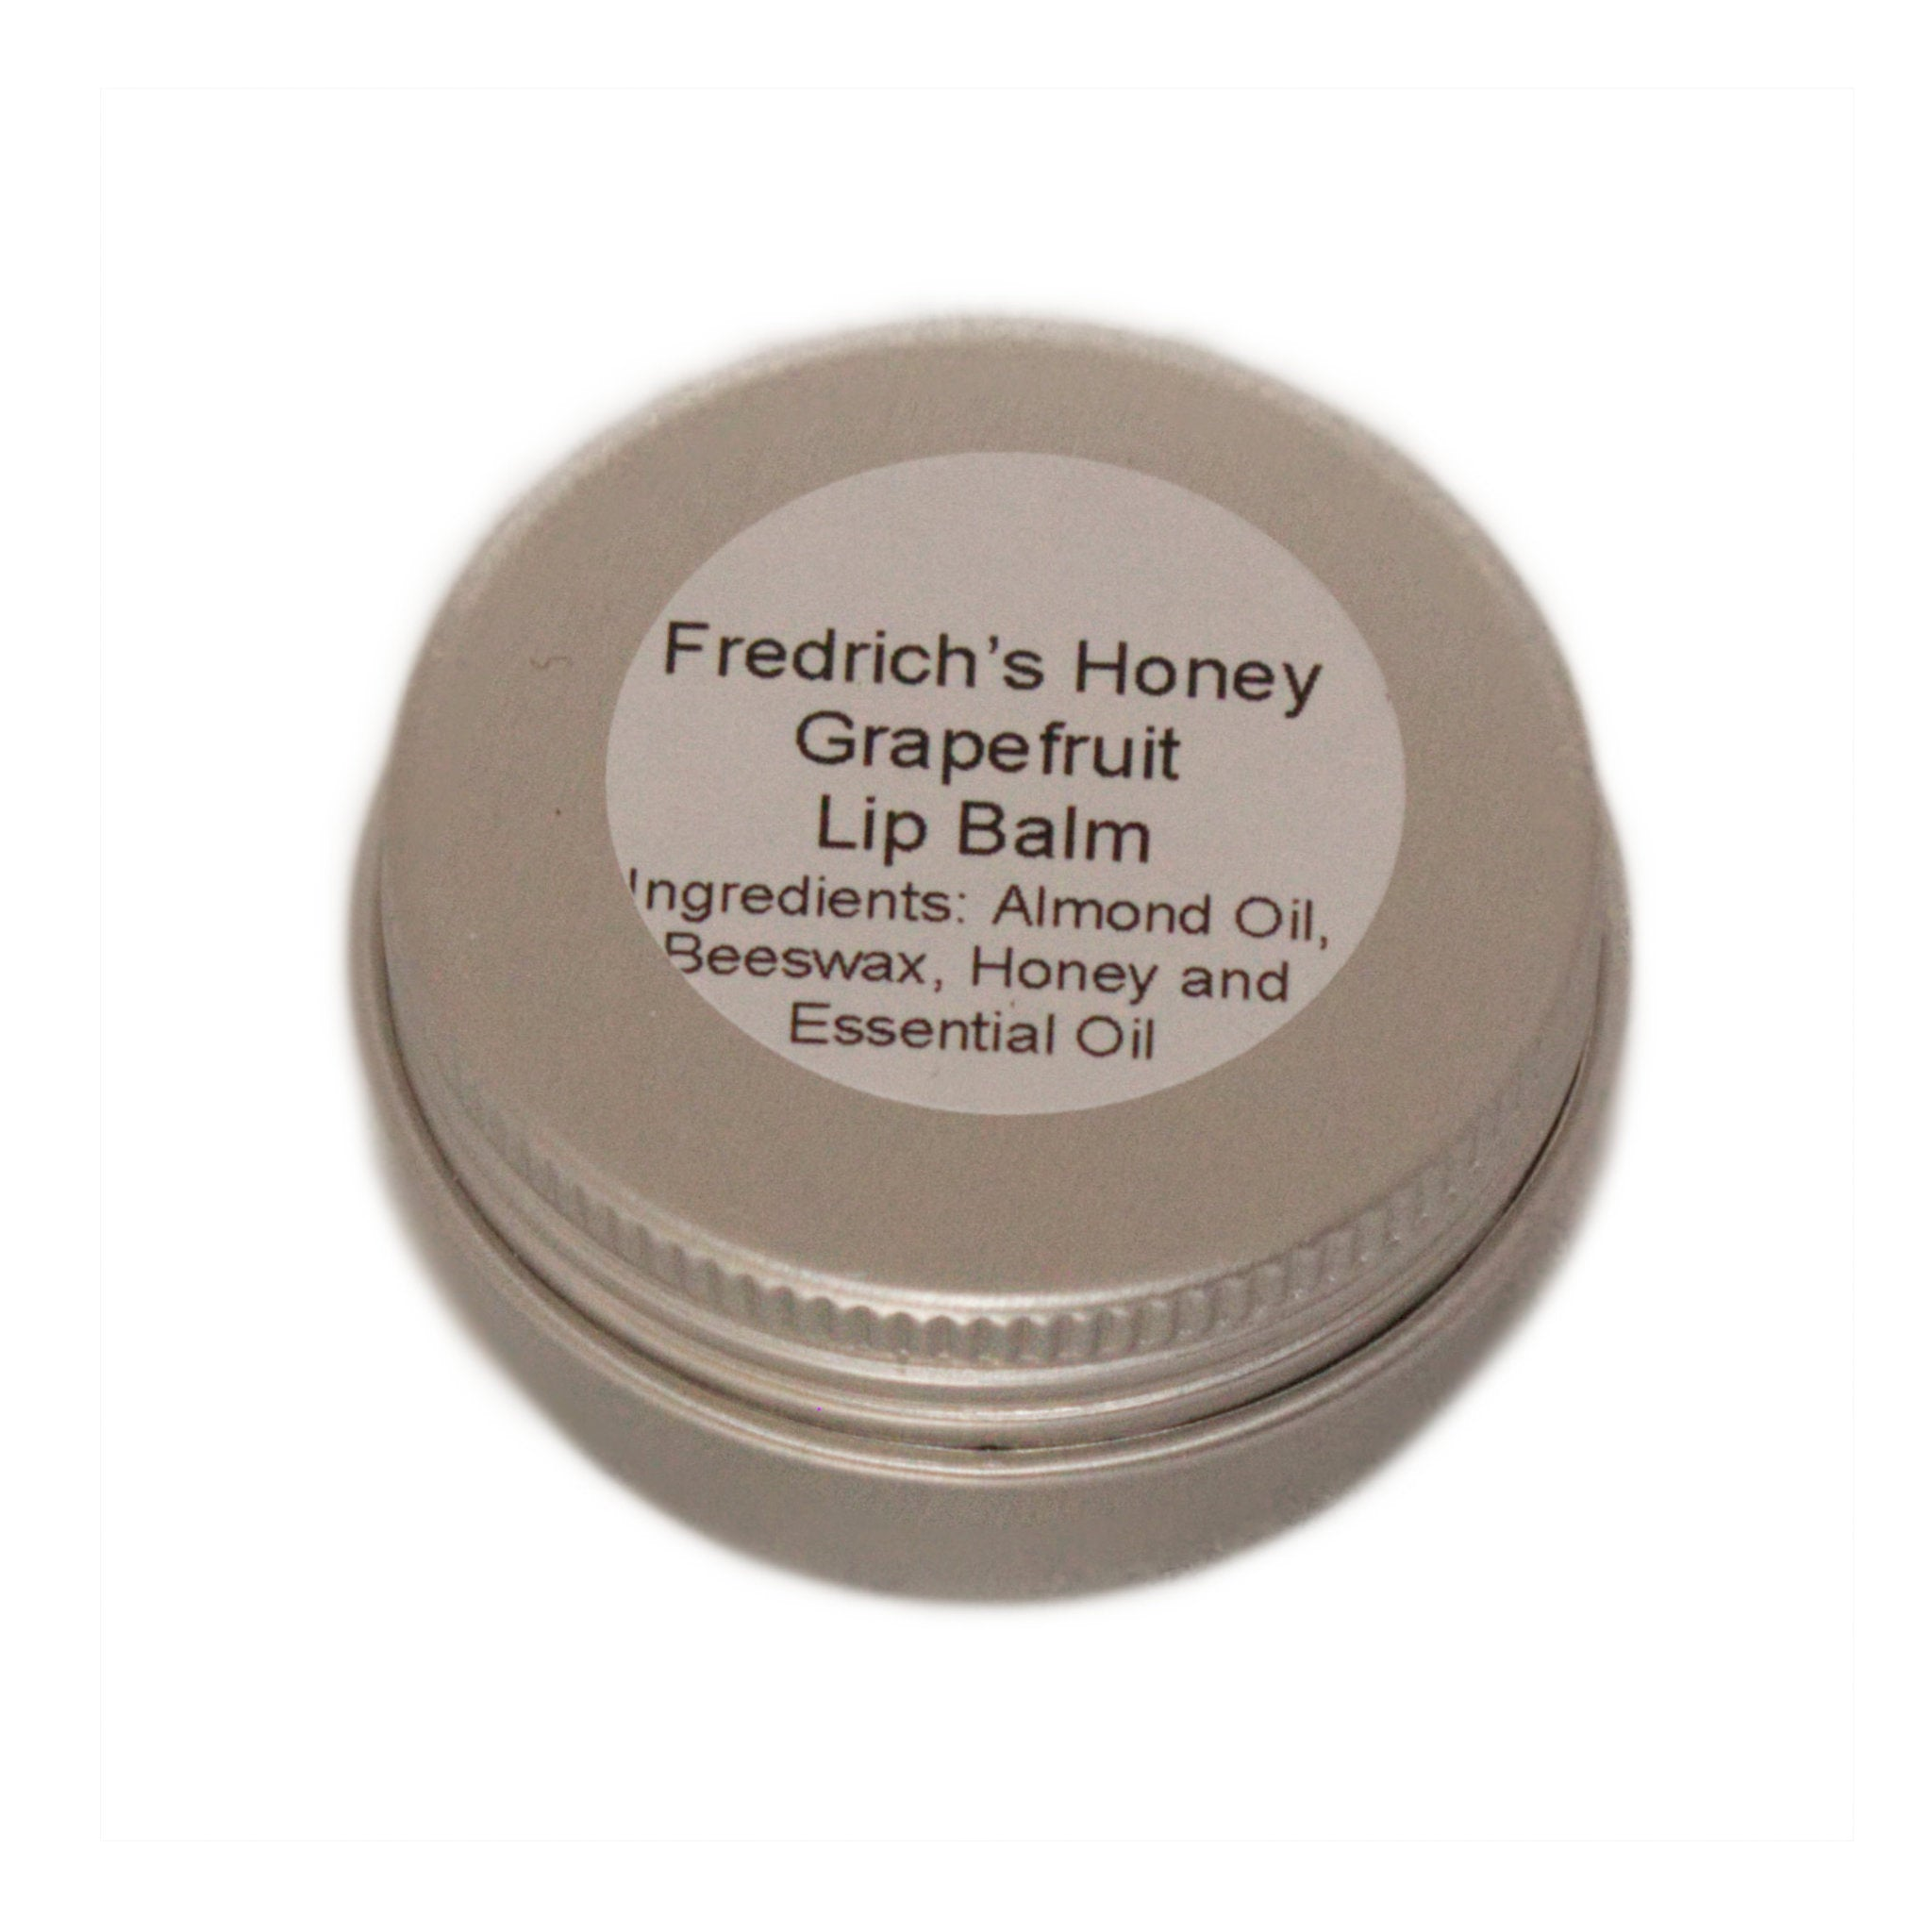 Lip balm grapefuit beeswax